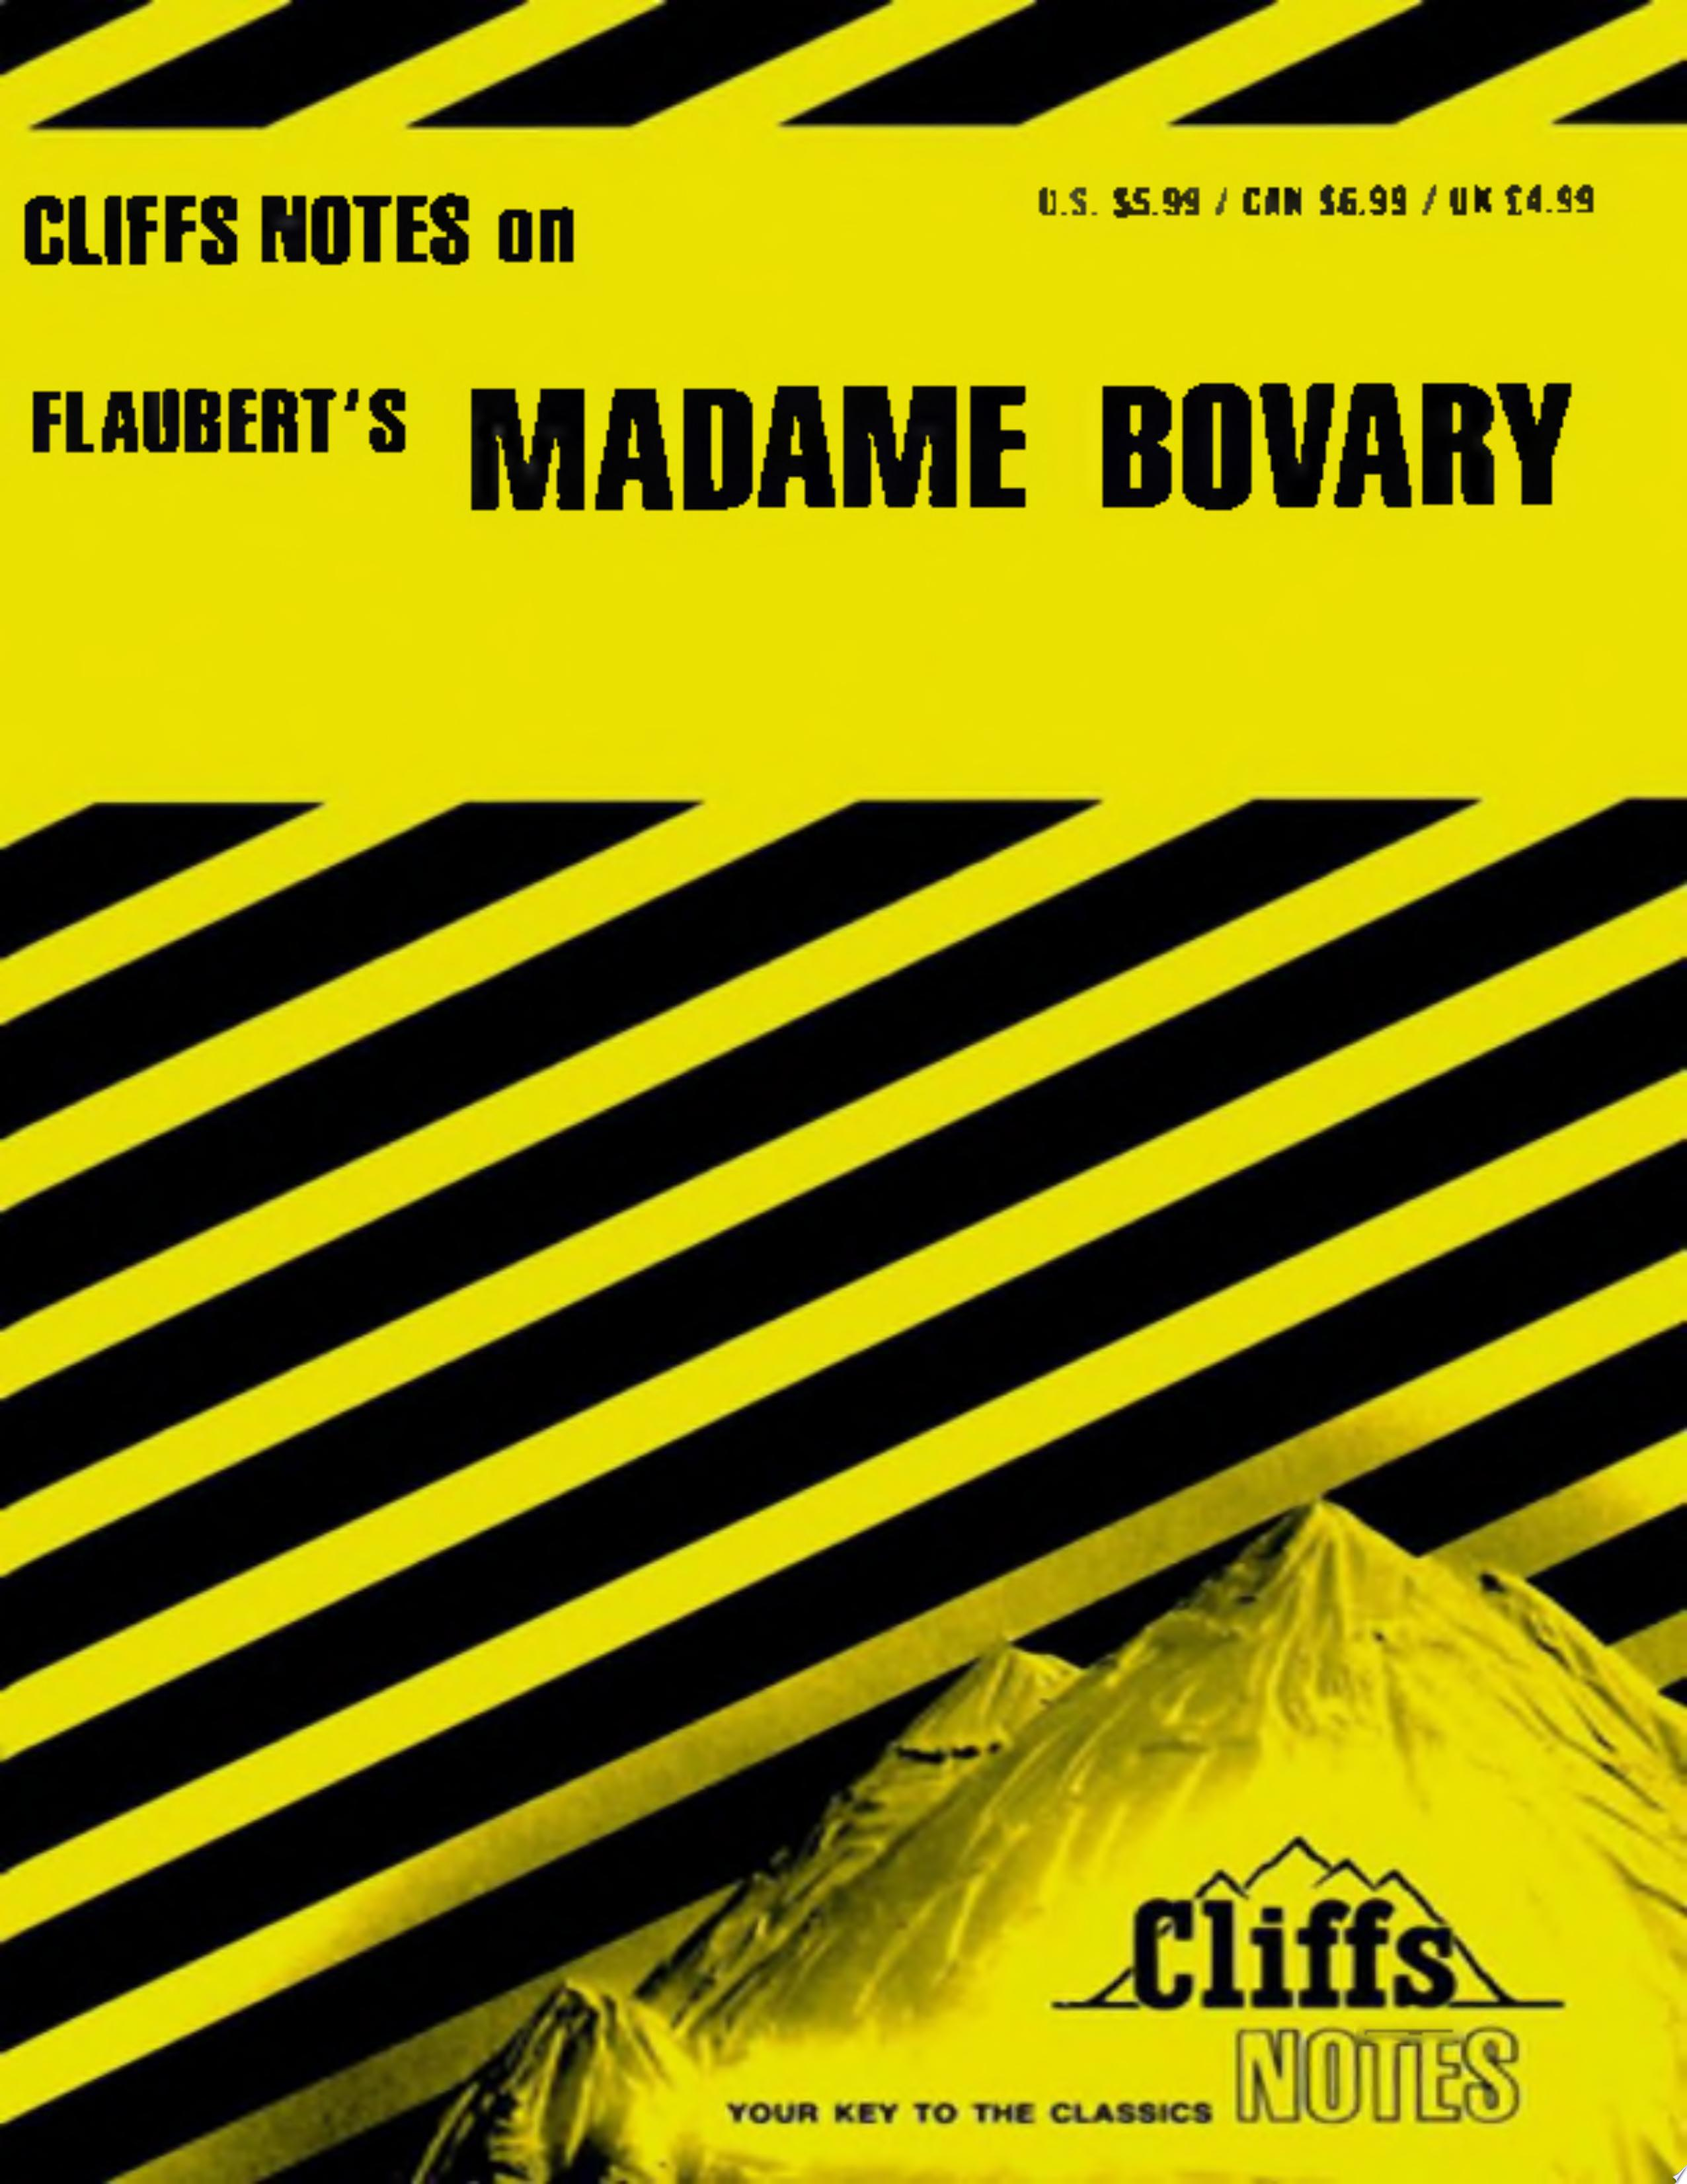 CliffsNotes on Flaubert s Madame Bovary